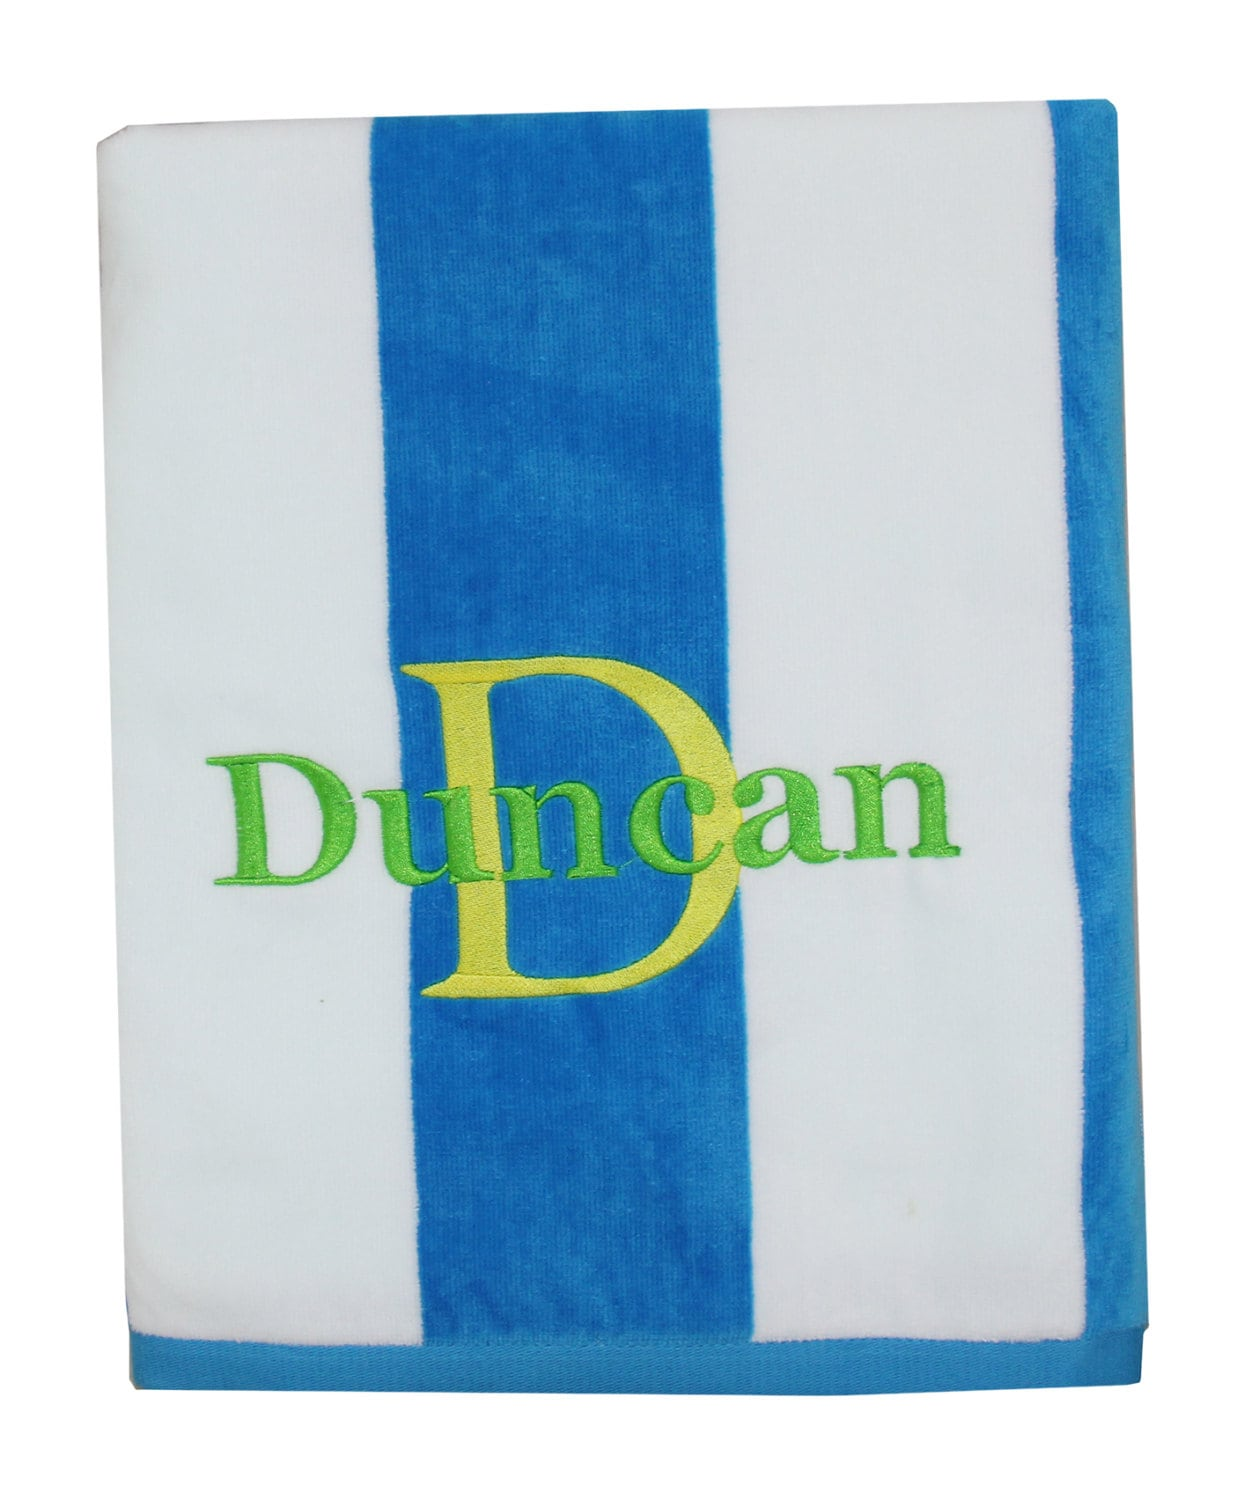 Personalized beach towels for kids are perfect for showing summer style while keeping track of your beach gear. Personalize your custom beach towels with a photo, name or initials, free! Personalized Kids Beach Towels. Personalized Boys Word-Art Throw (1) P. $ Embroidered Royal Blue Polka Dot Beach Towel (1) P.